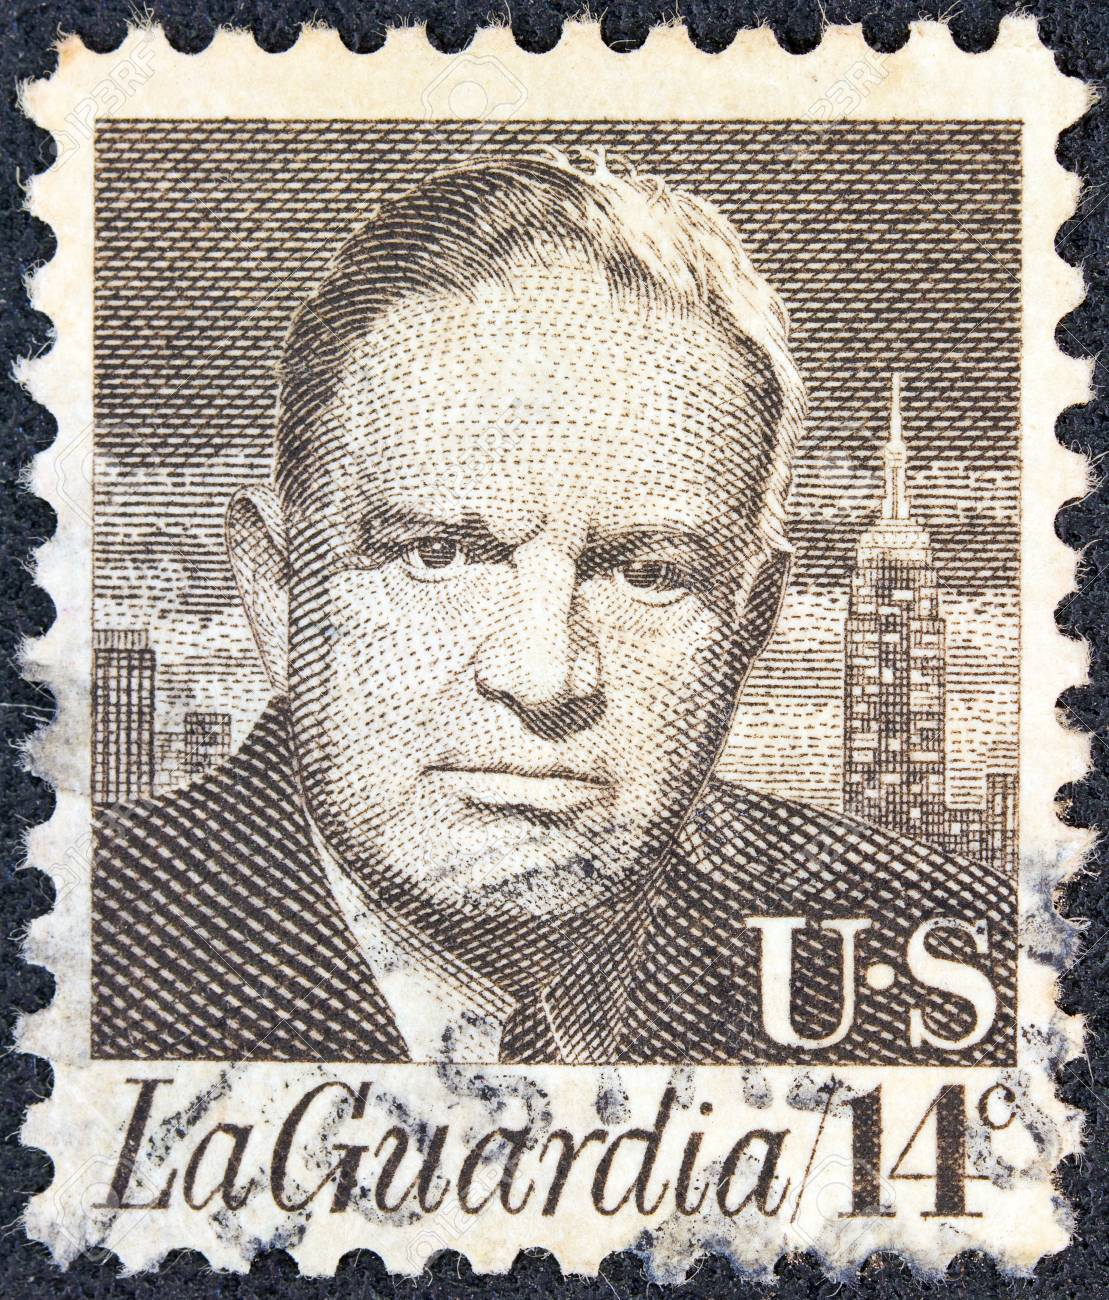 USA - CIRCA 1972: A stamp printed in USA from the